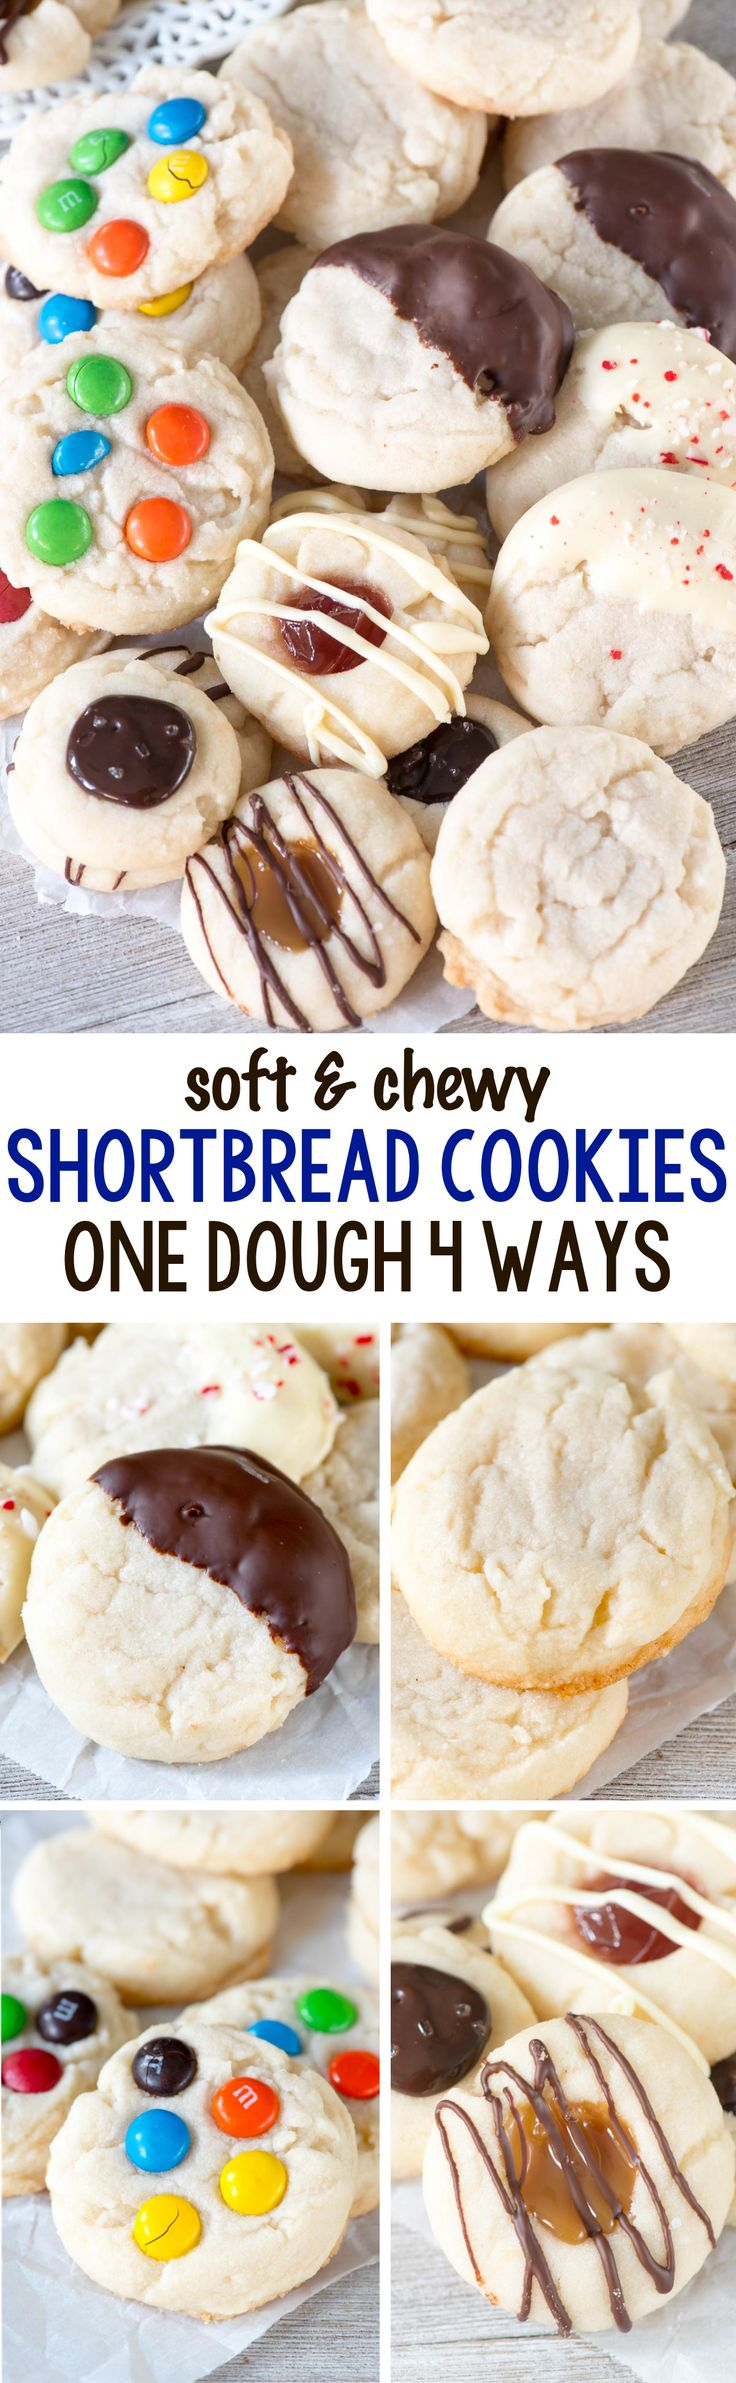 Soft & Chewy Shortbread Cookies (1 dough 4 ways)